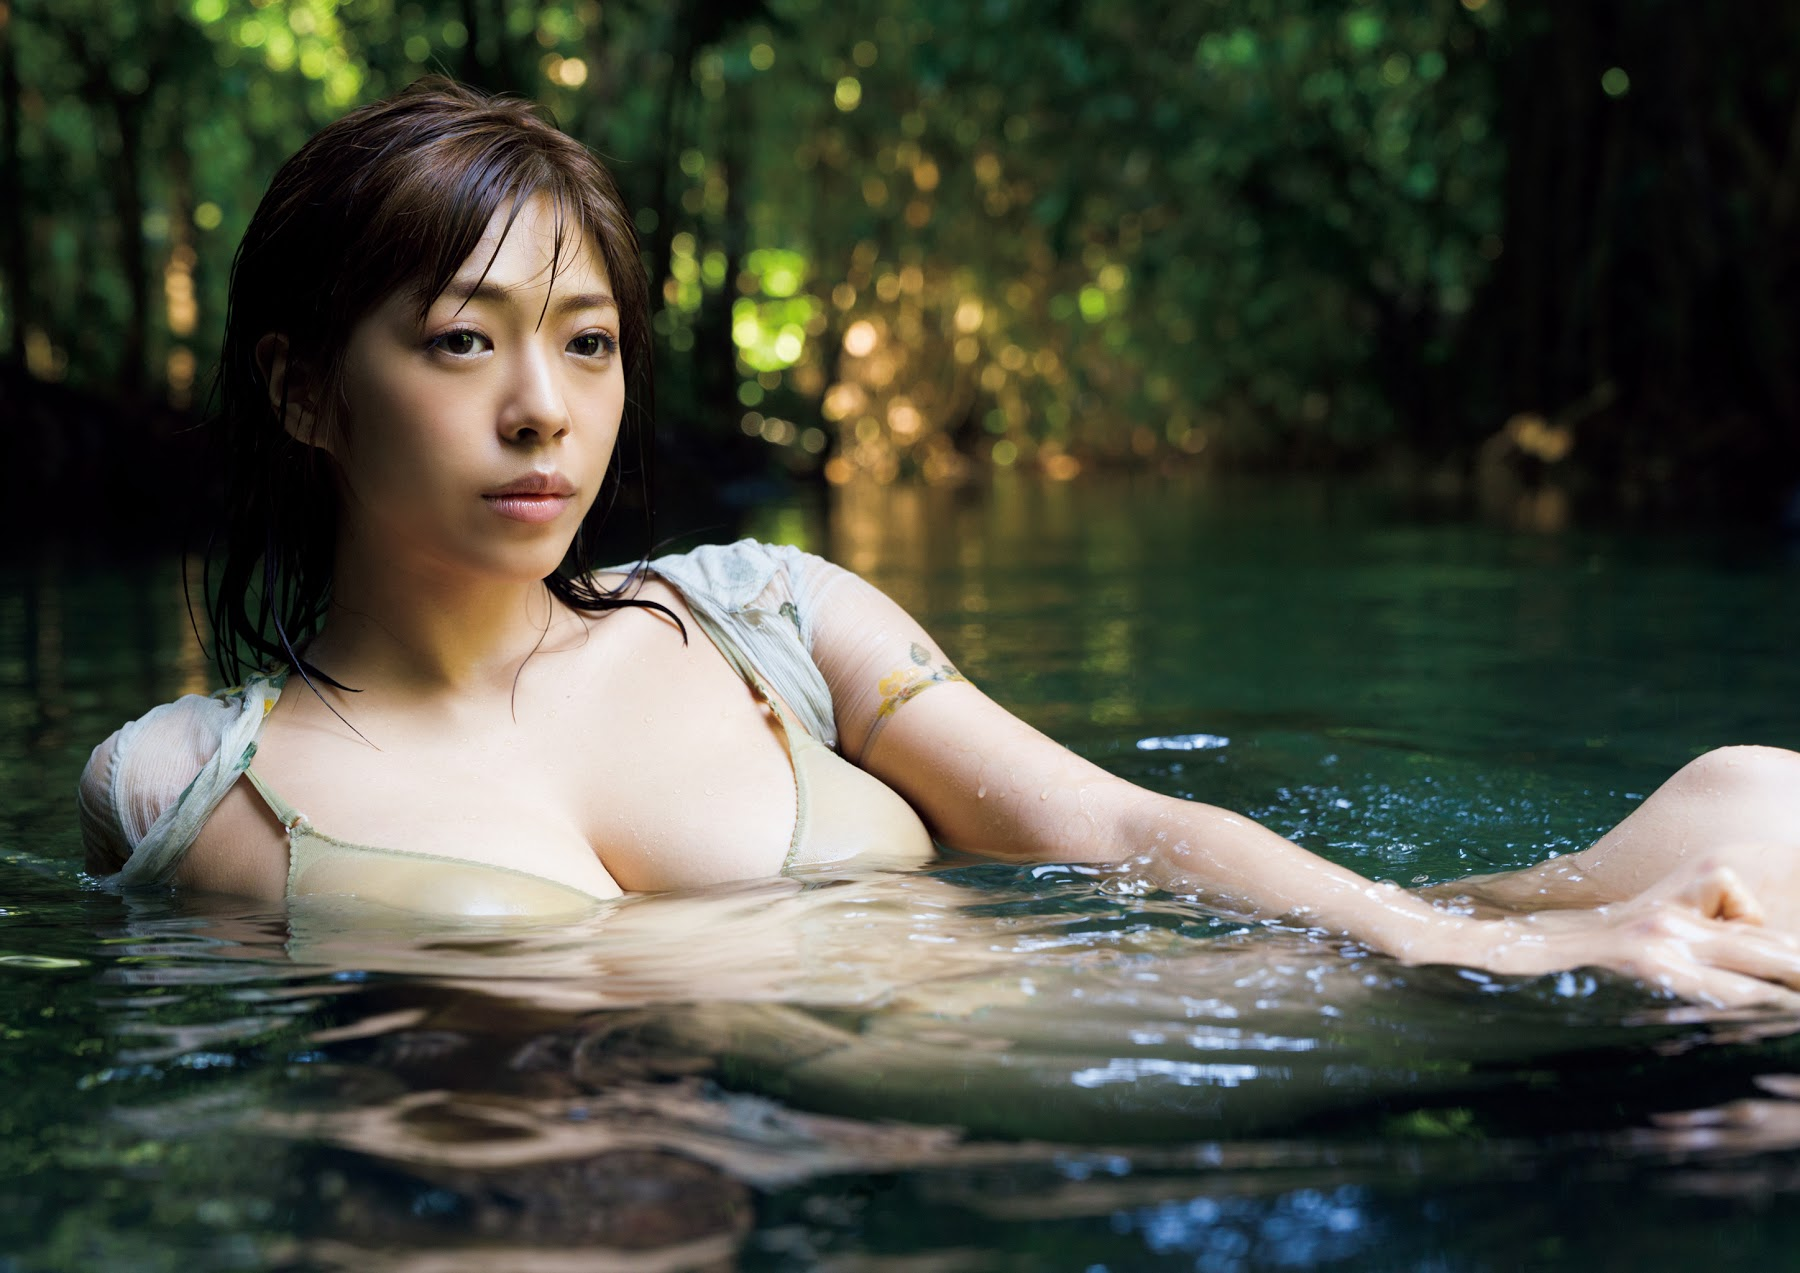 Super body of H cup Minami Wachi 2020 that exposes body and mind in tropical Thailand116